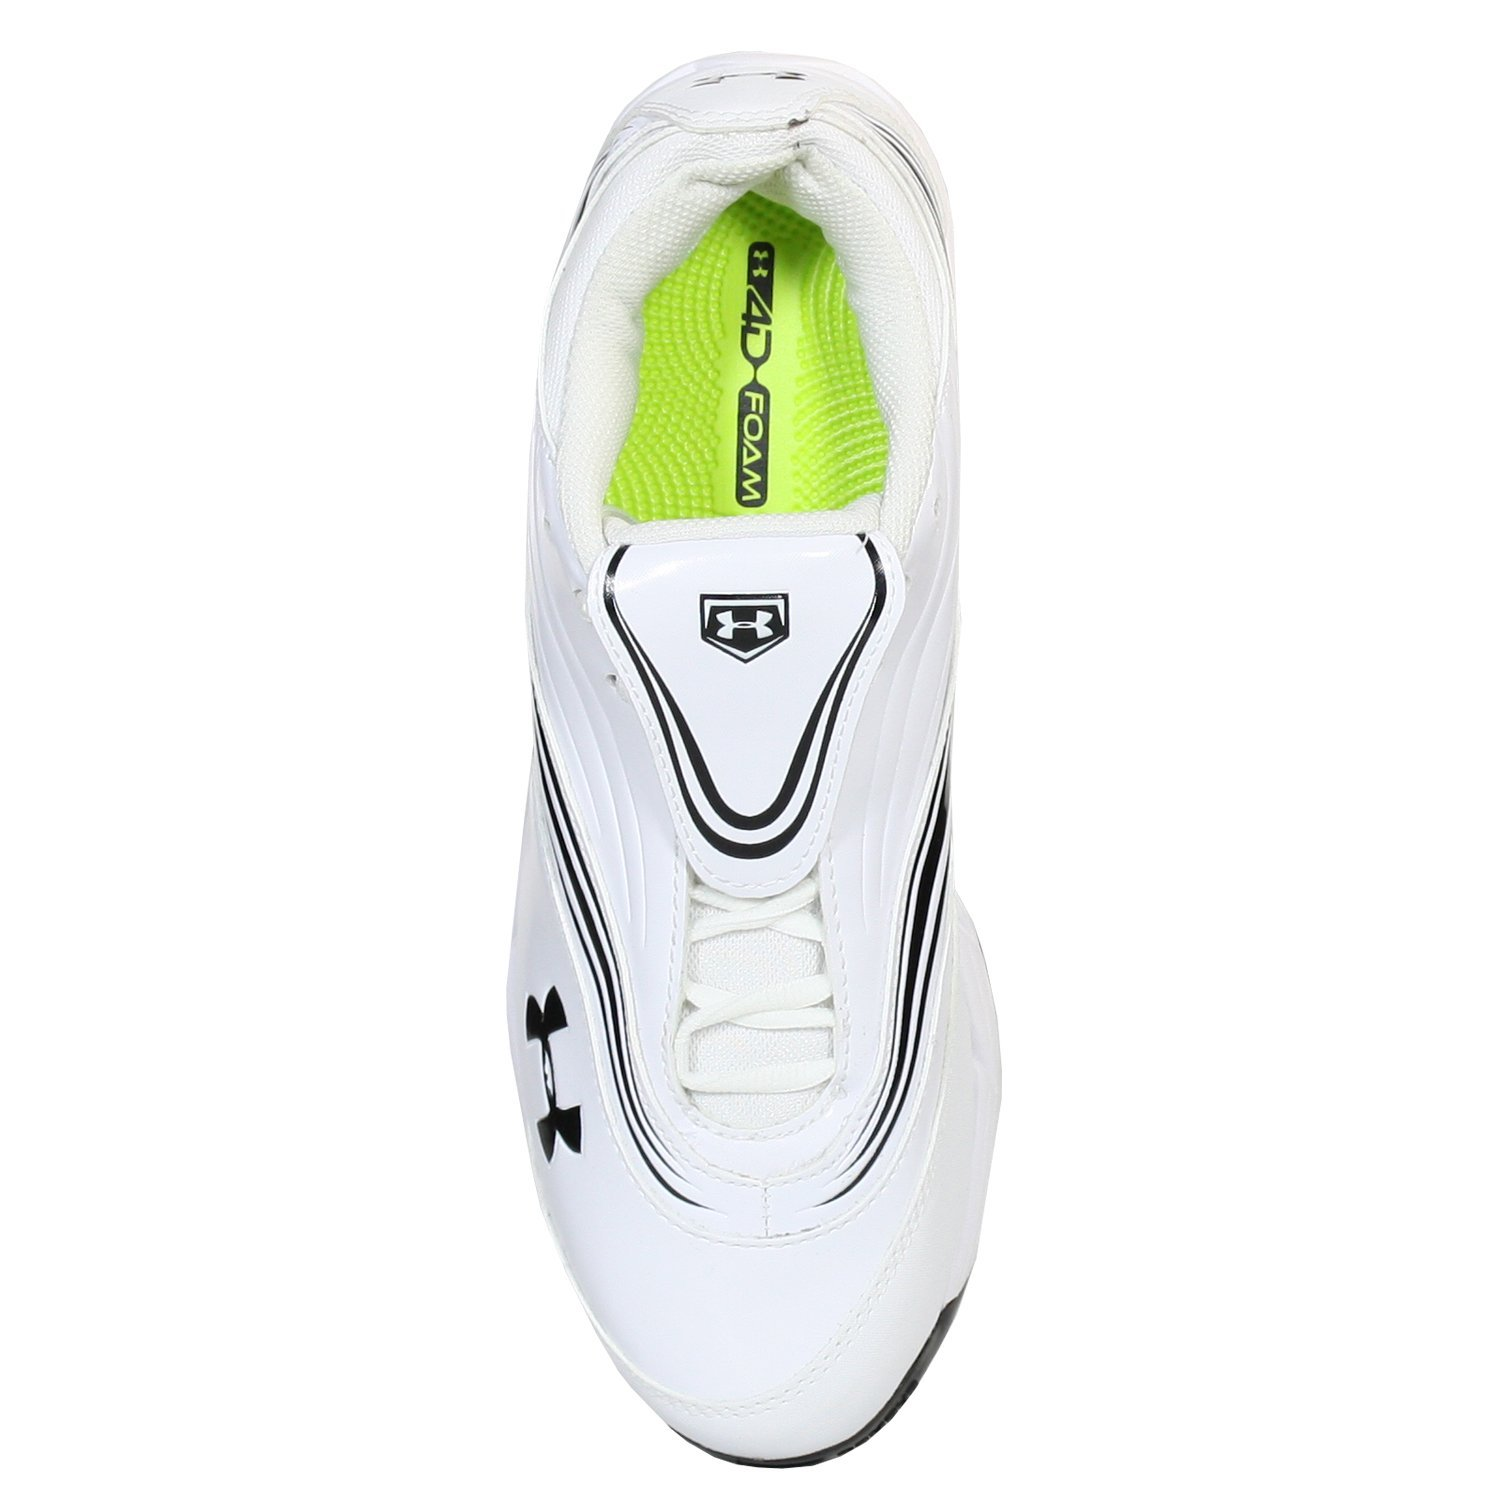 Under Armour Glyde IV WMS ST White//BLK Womens Softball Shoes US 11 M EUR 43